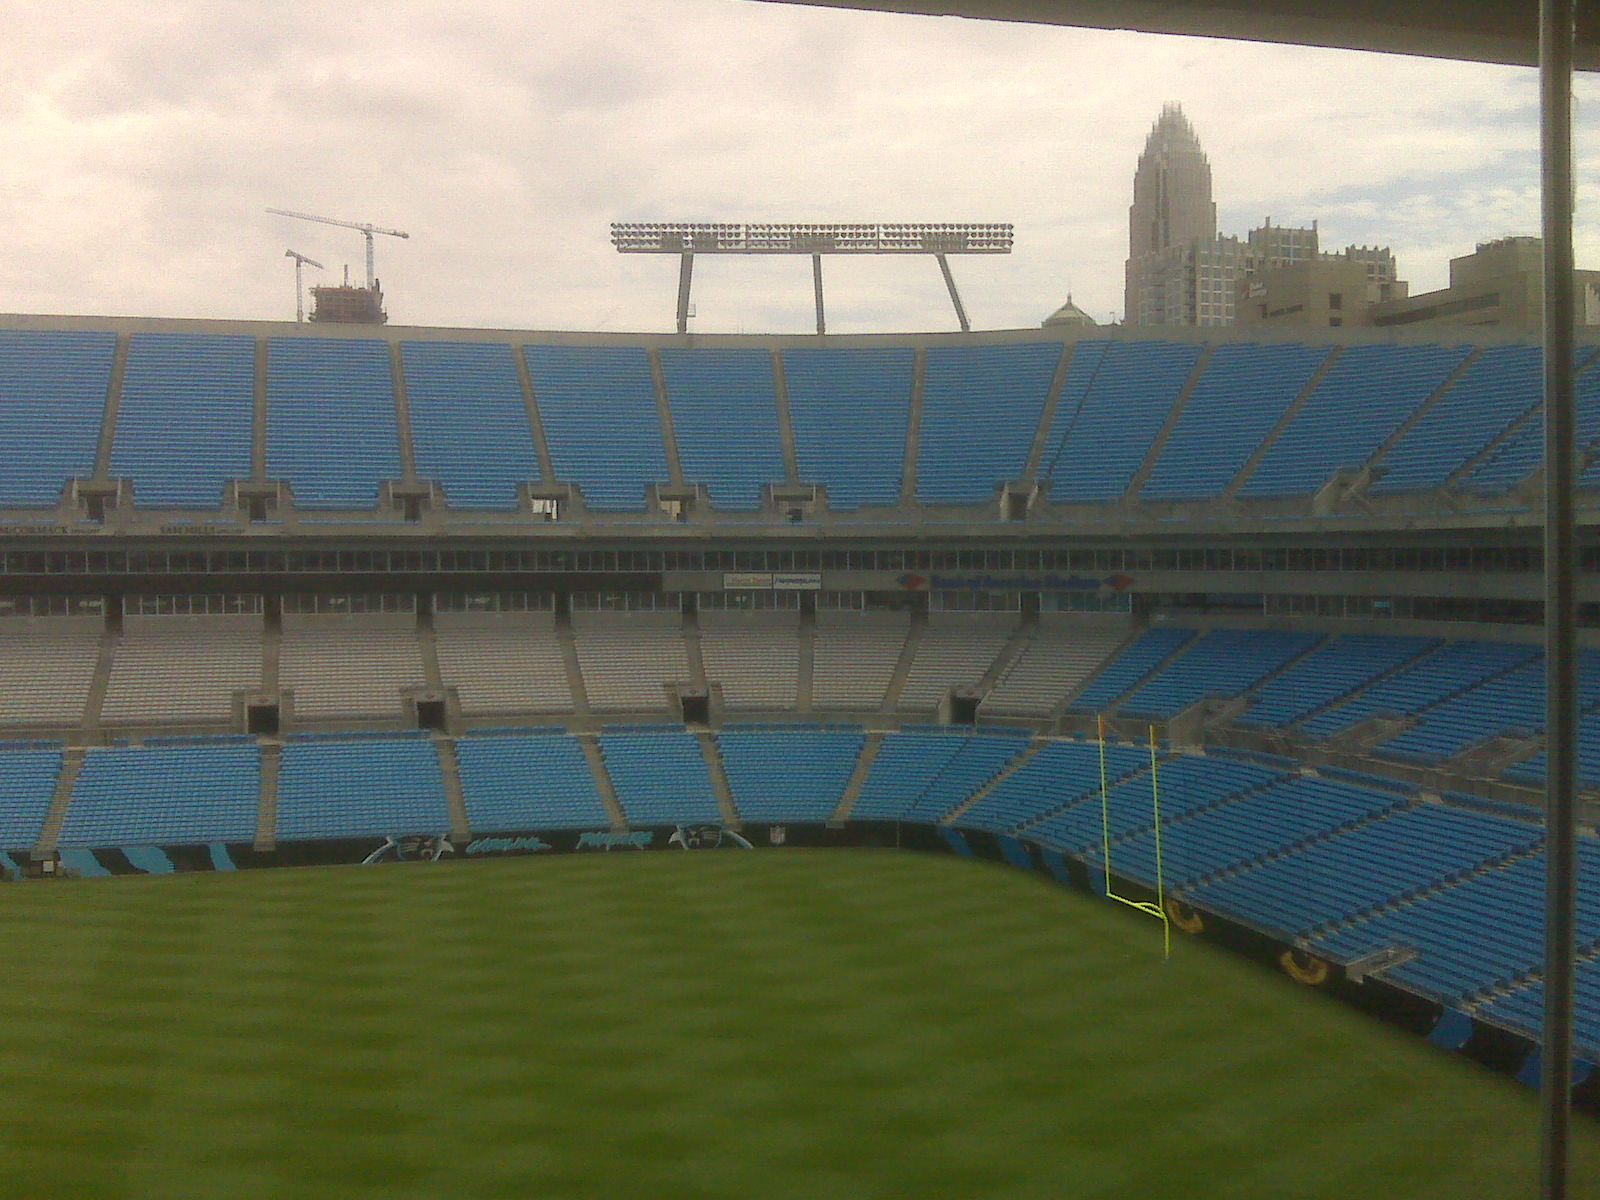 View from the press box2